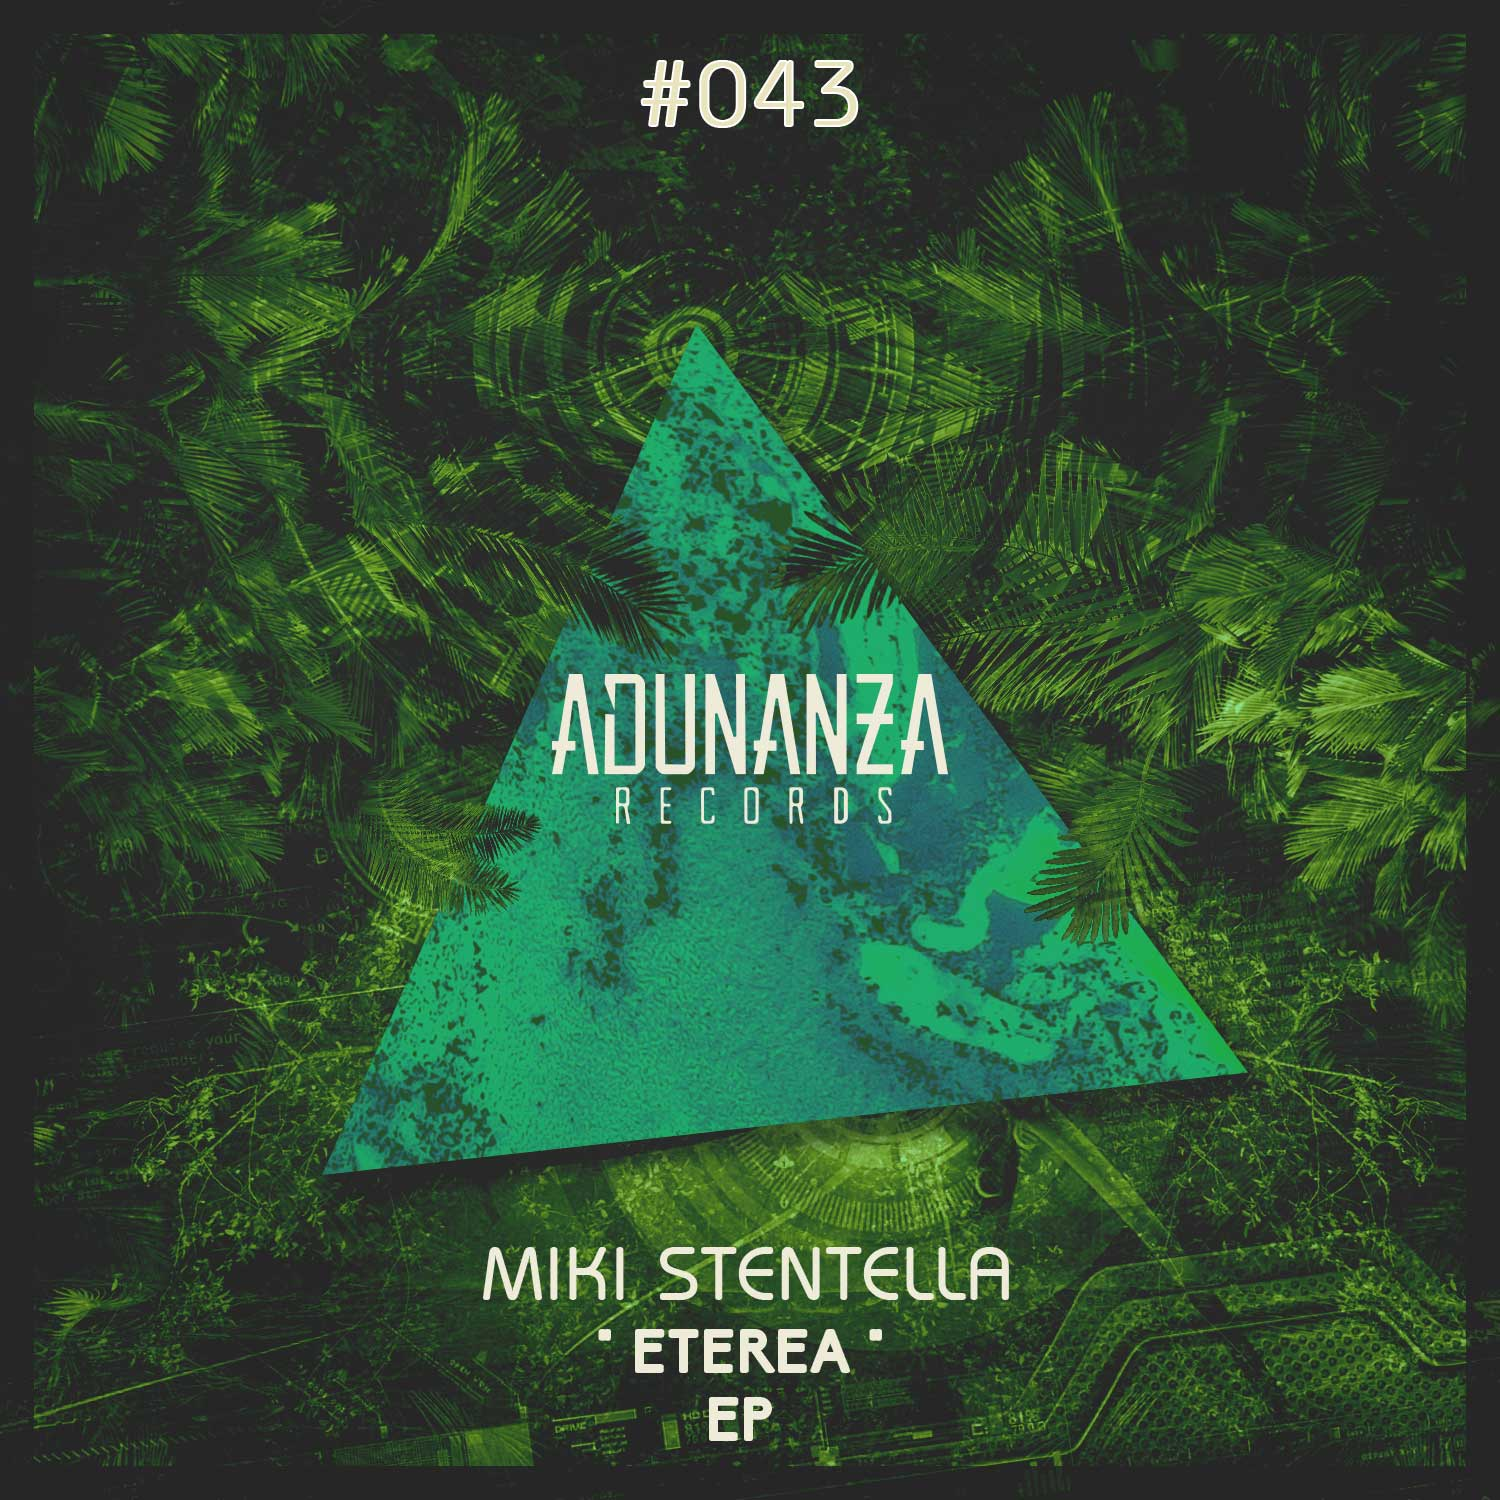 """""""Eterea"""" is the new jam by Adunanza's boss Miki Stentella"""